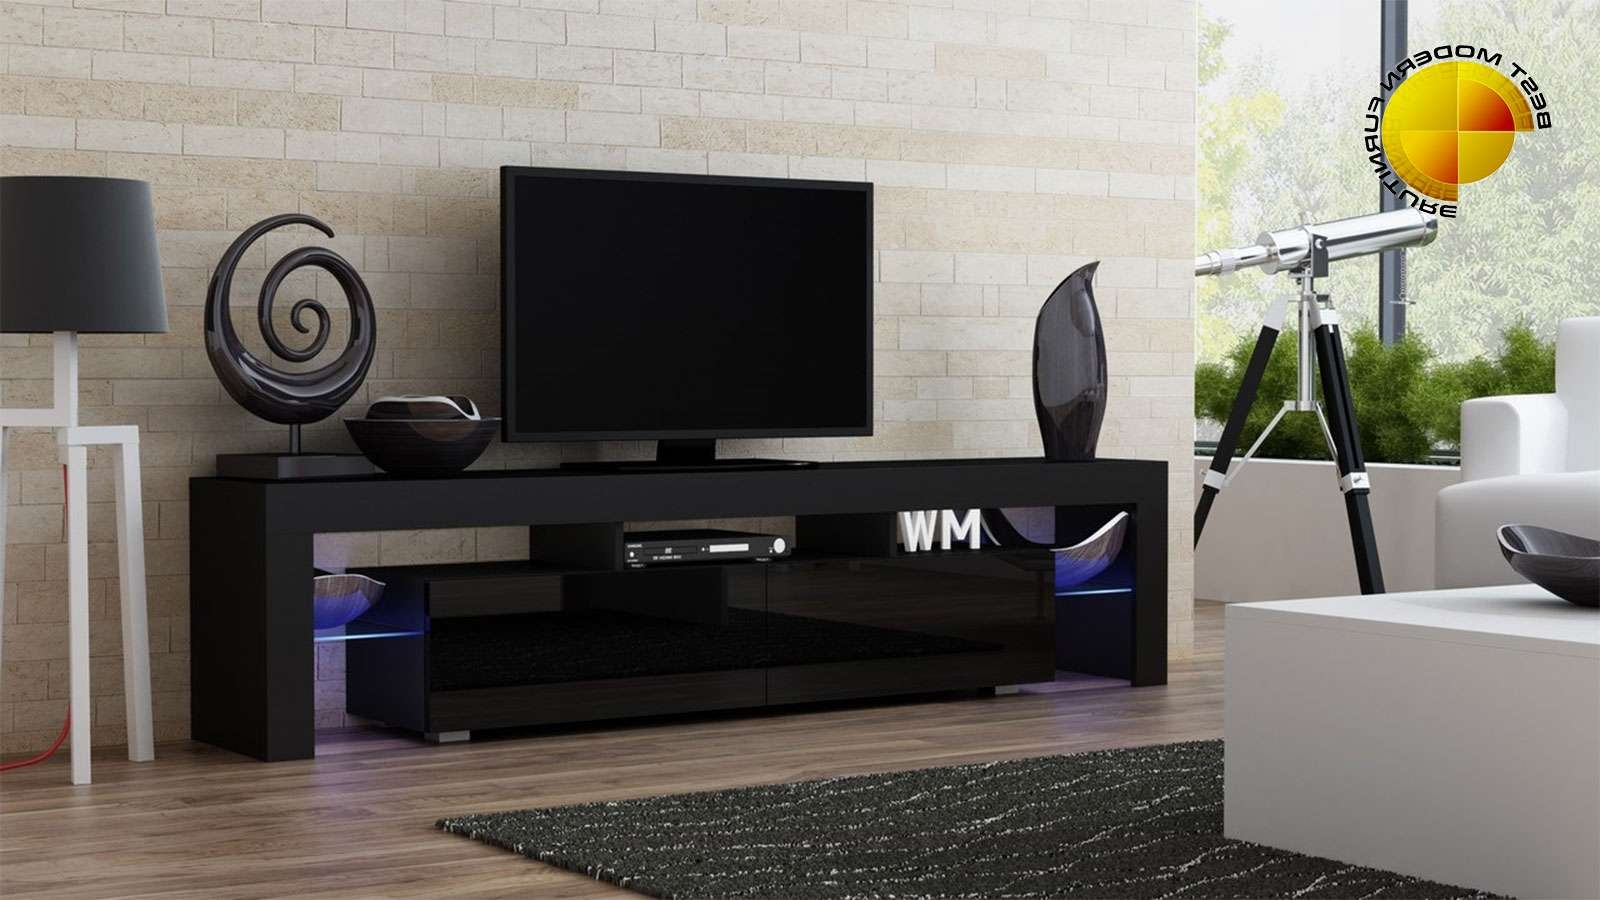 Modern Tv Stand 200Cm High Gloss Cabinet Rgb Led Lights Black Unit Throughout Black Gloss Tv Stands (View 14 of 20)